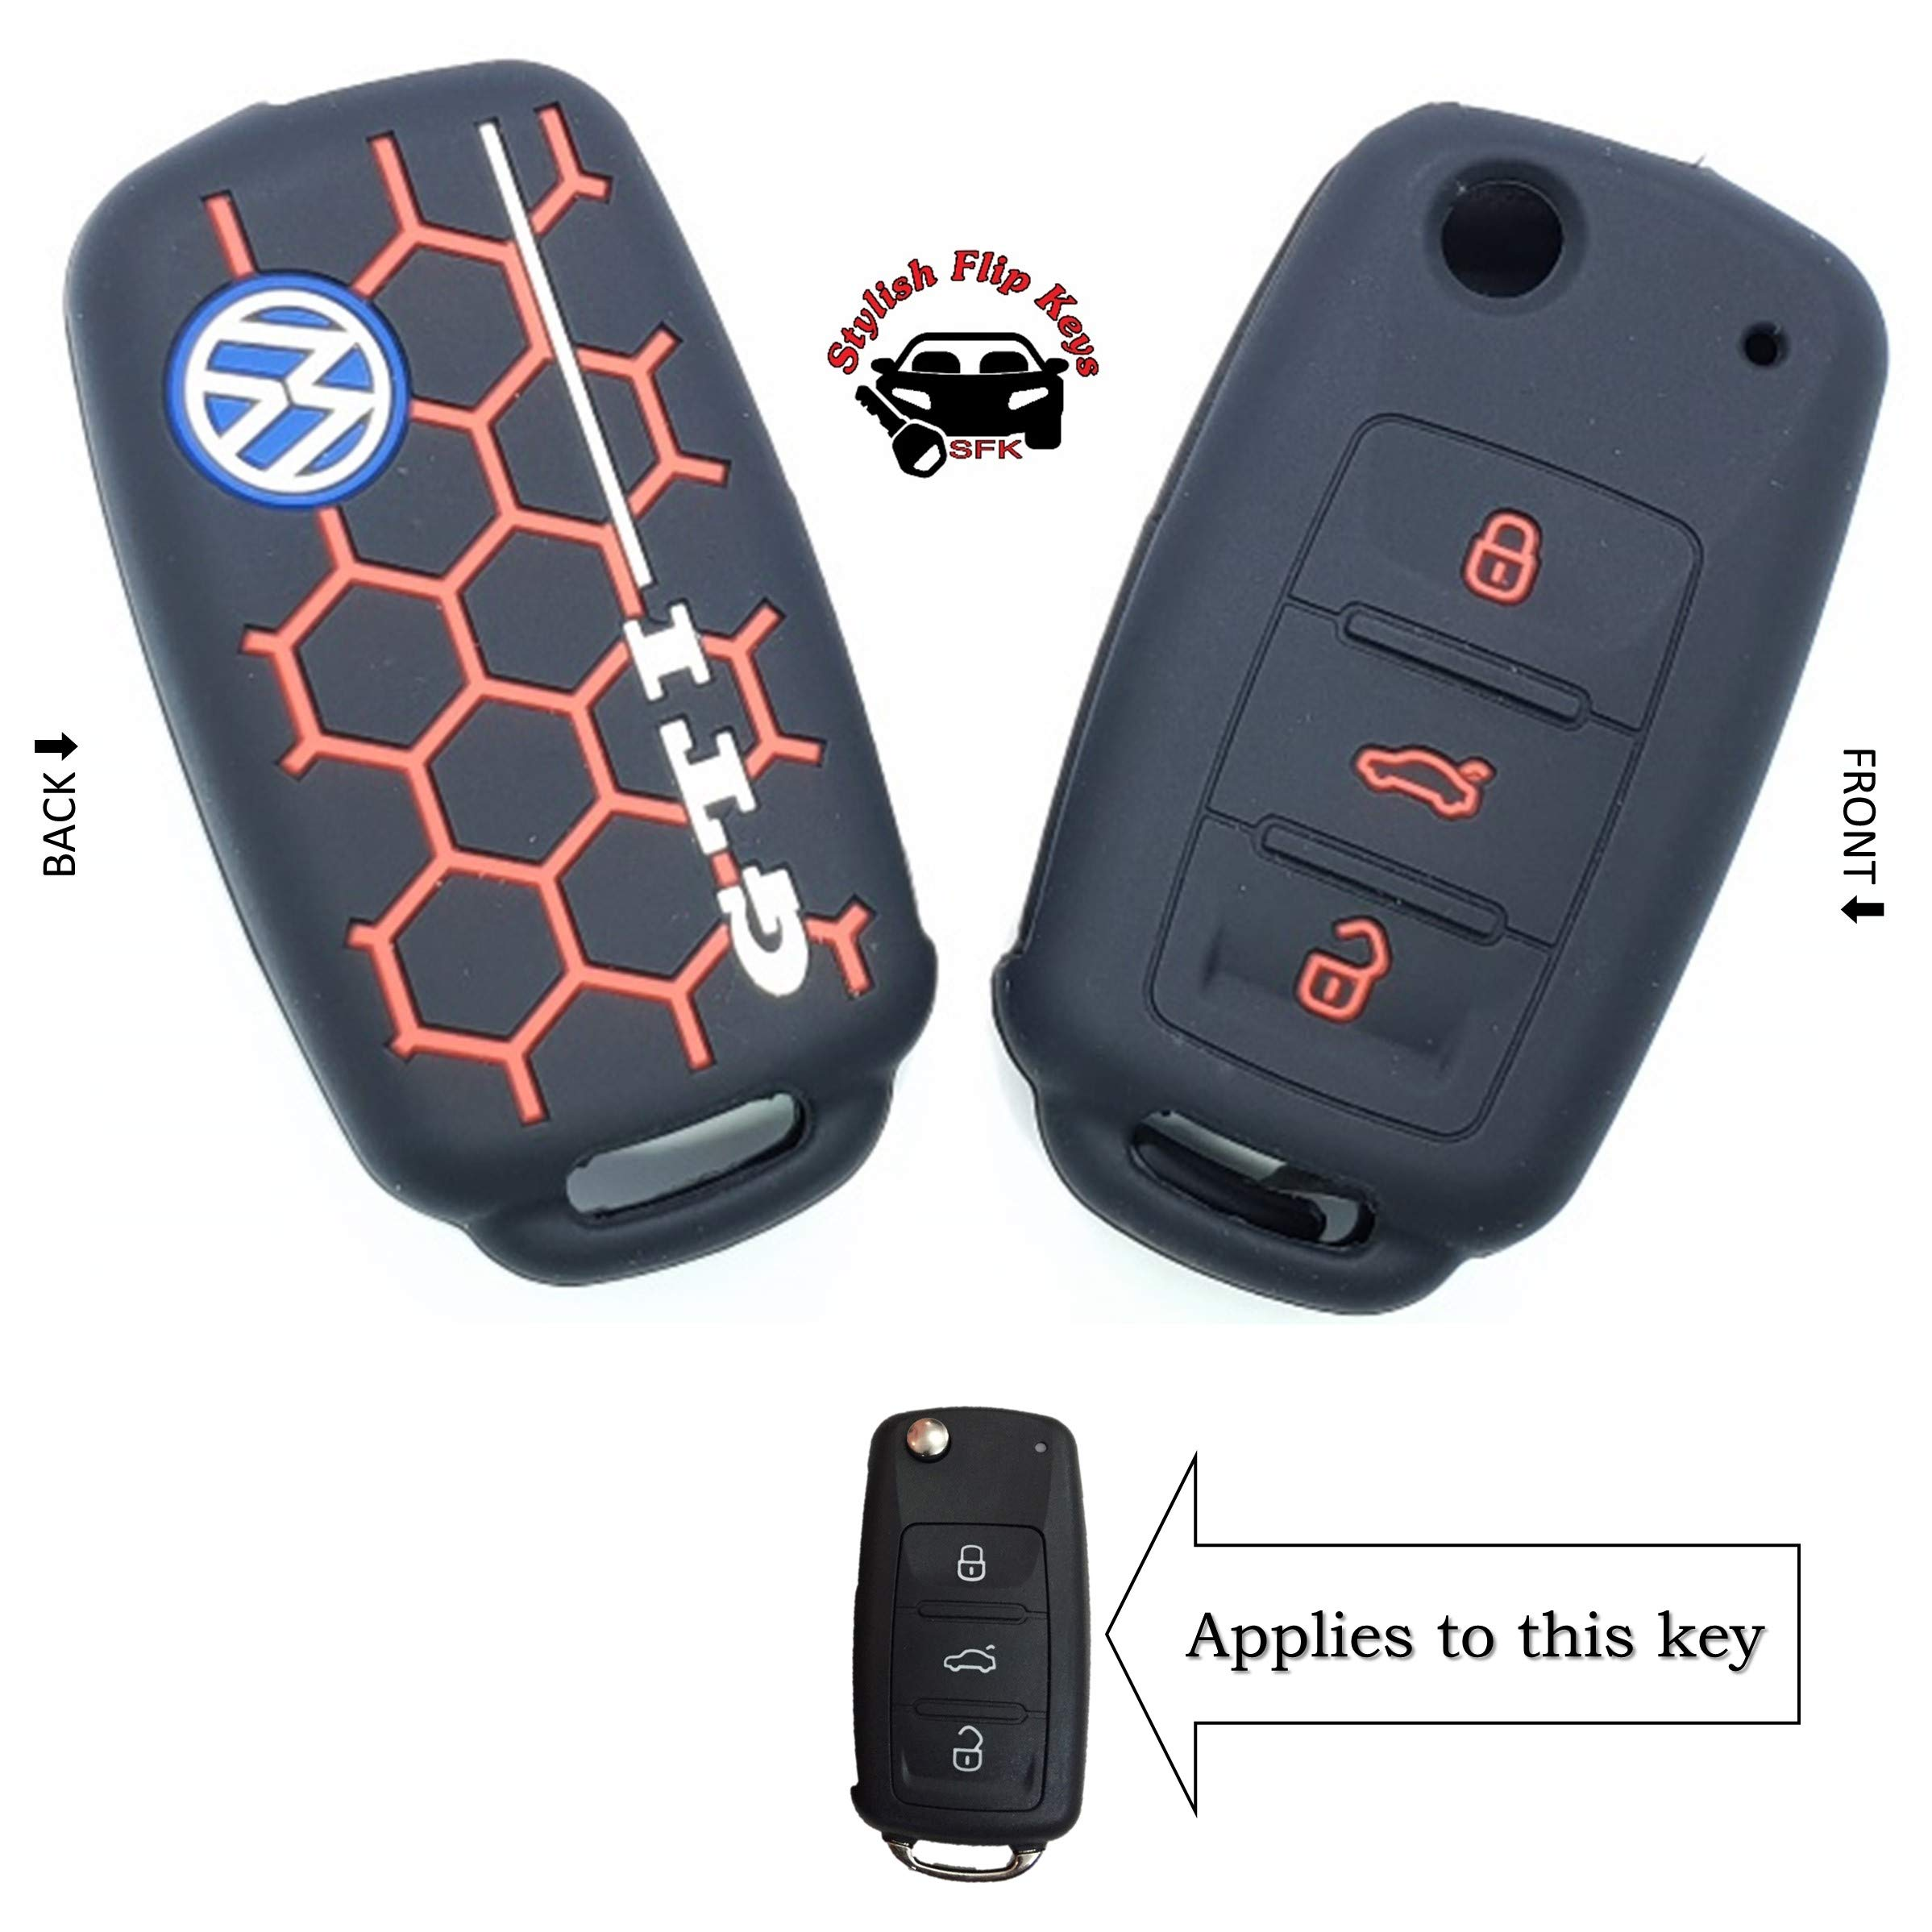 SFK Silicone Flip Key Cover for Volkswagen Polo/Vento/Jetta/Passat Flip Keys (VW 3 Button Flip Keys) (VW-8-GTI-Red-On-Black) product image